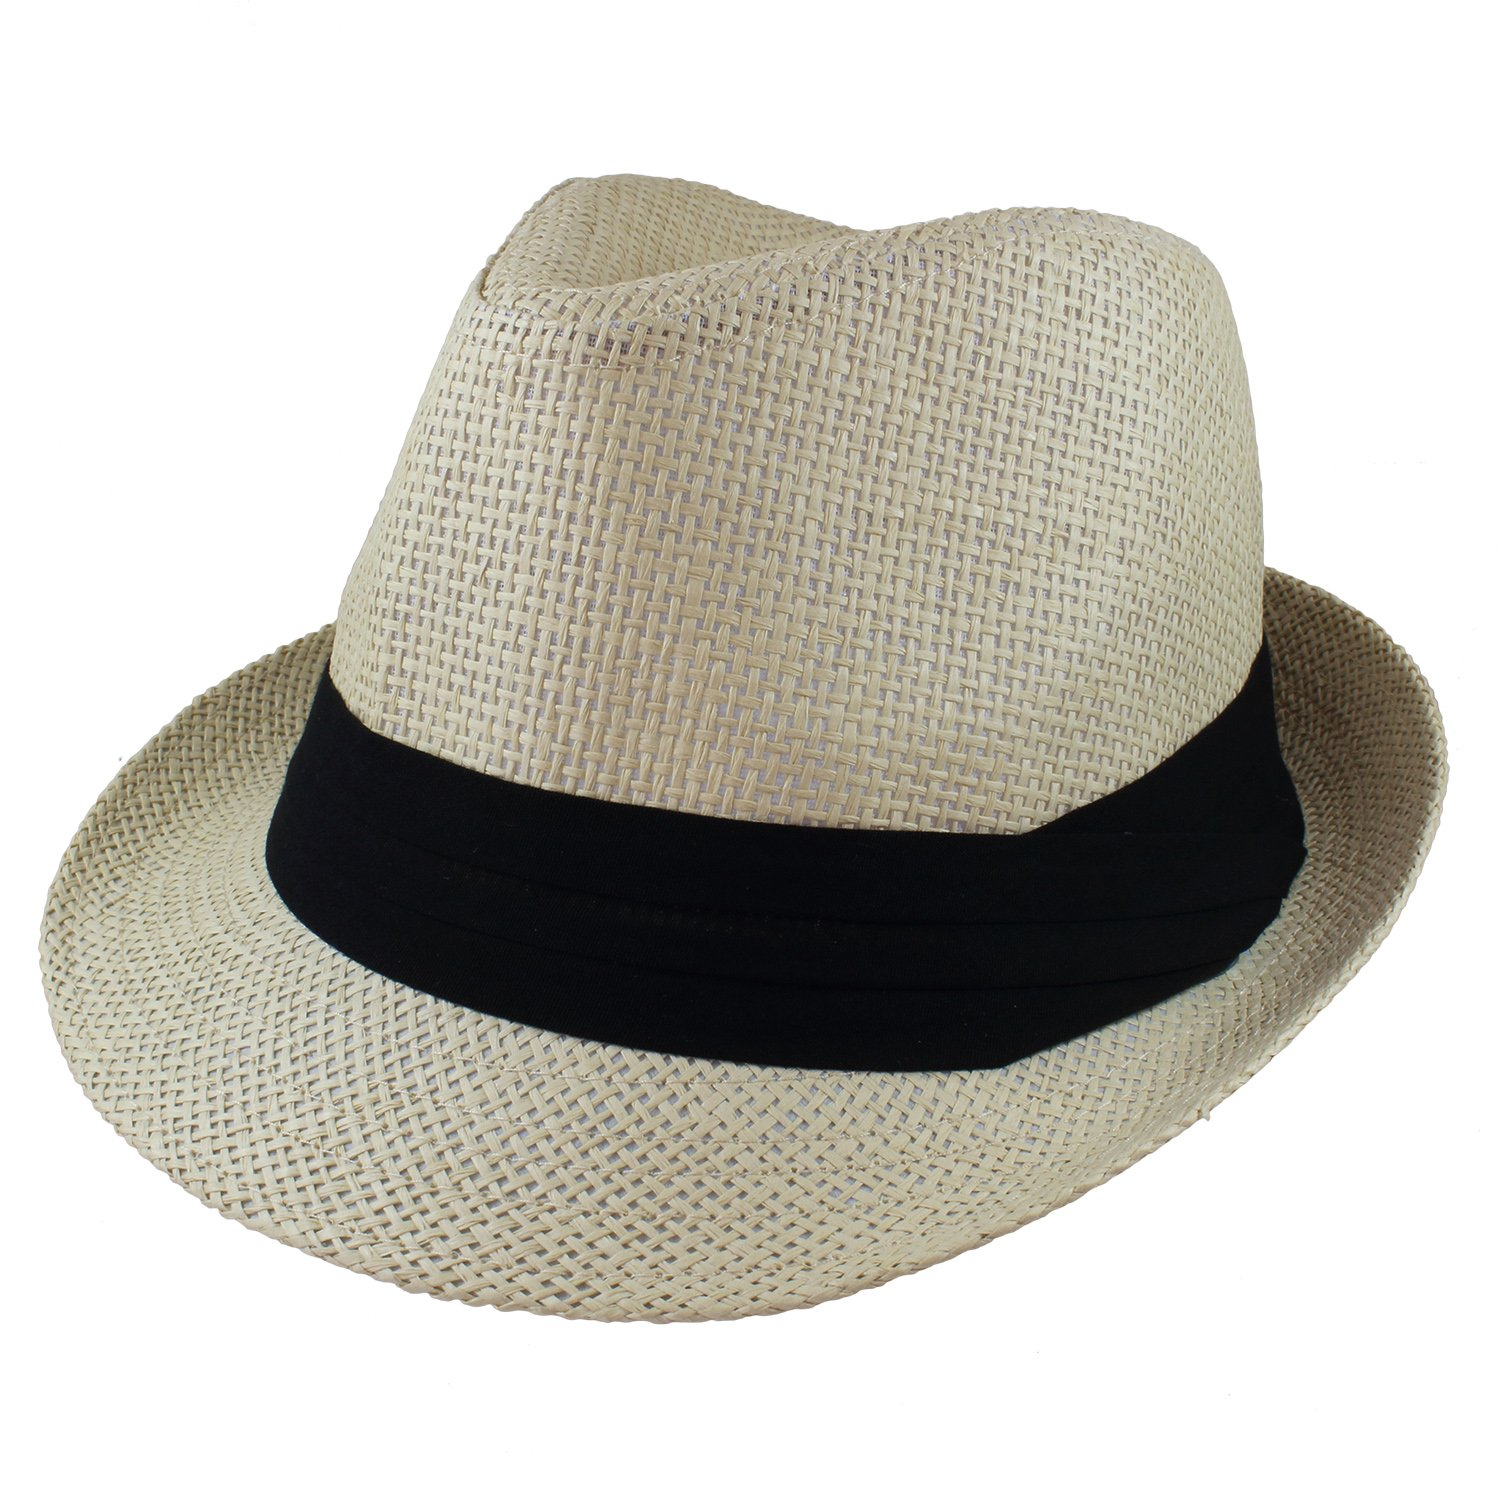 c9c88152 Online Cheap wholesale Gelante Summer Fedora Panama Straw Hats with Black  Band Hats & Caps Suppliers